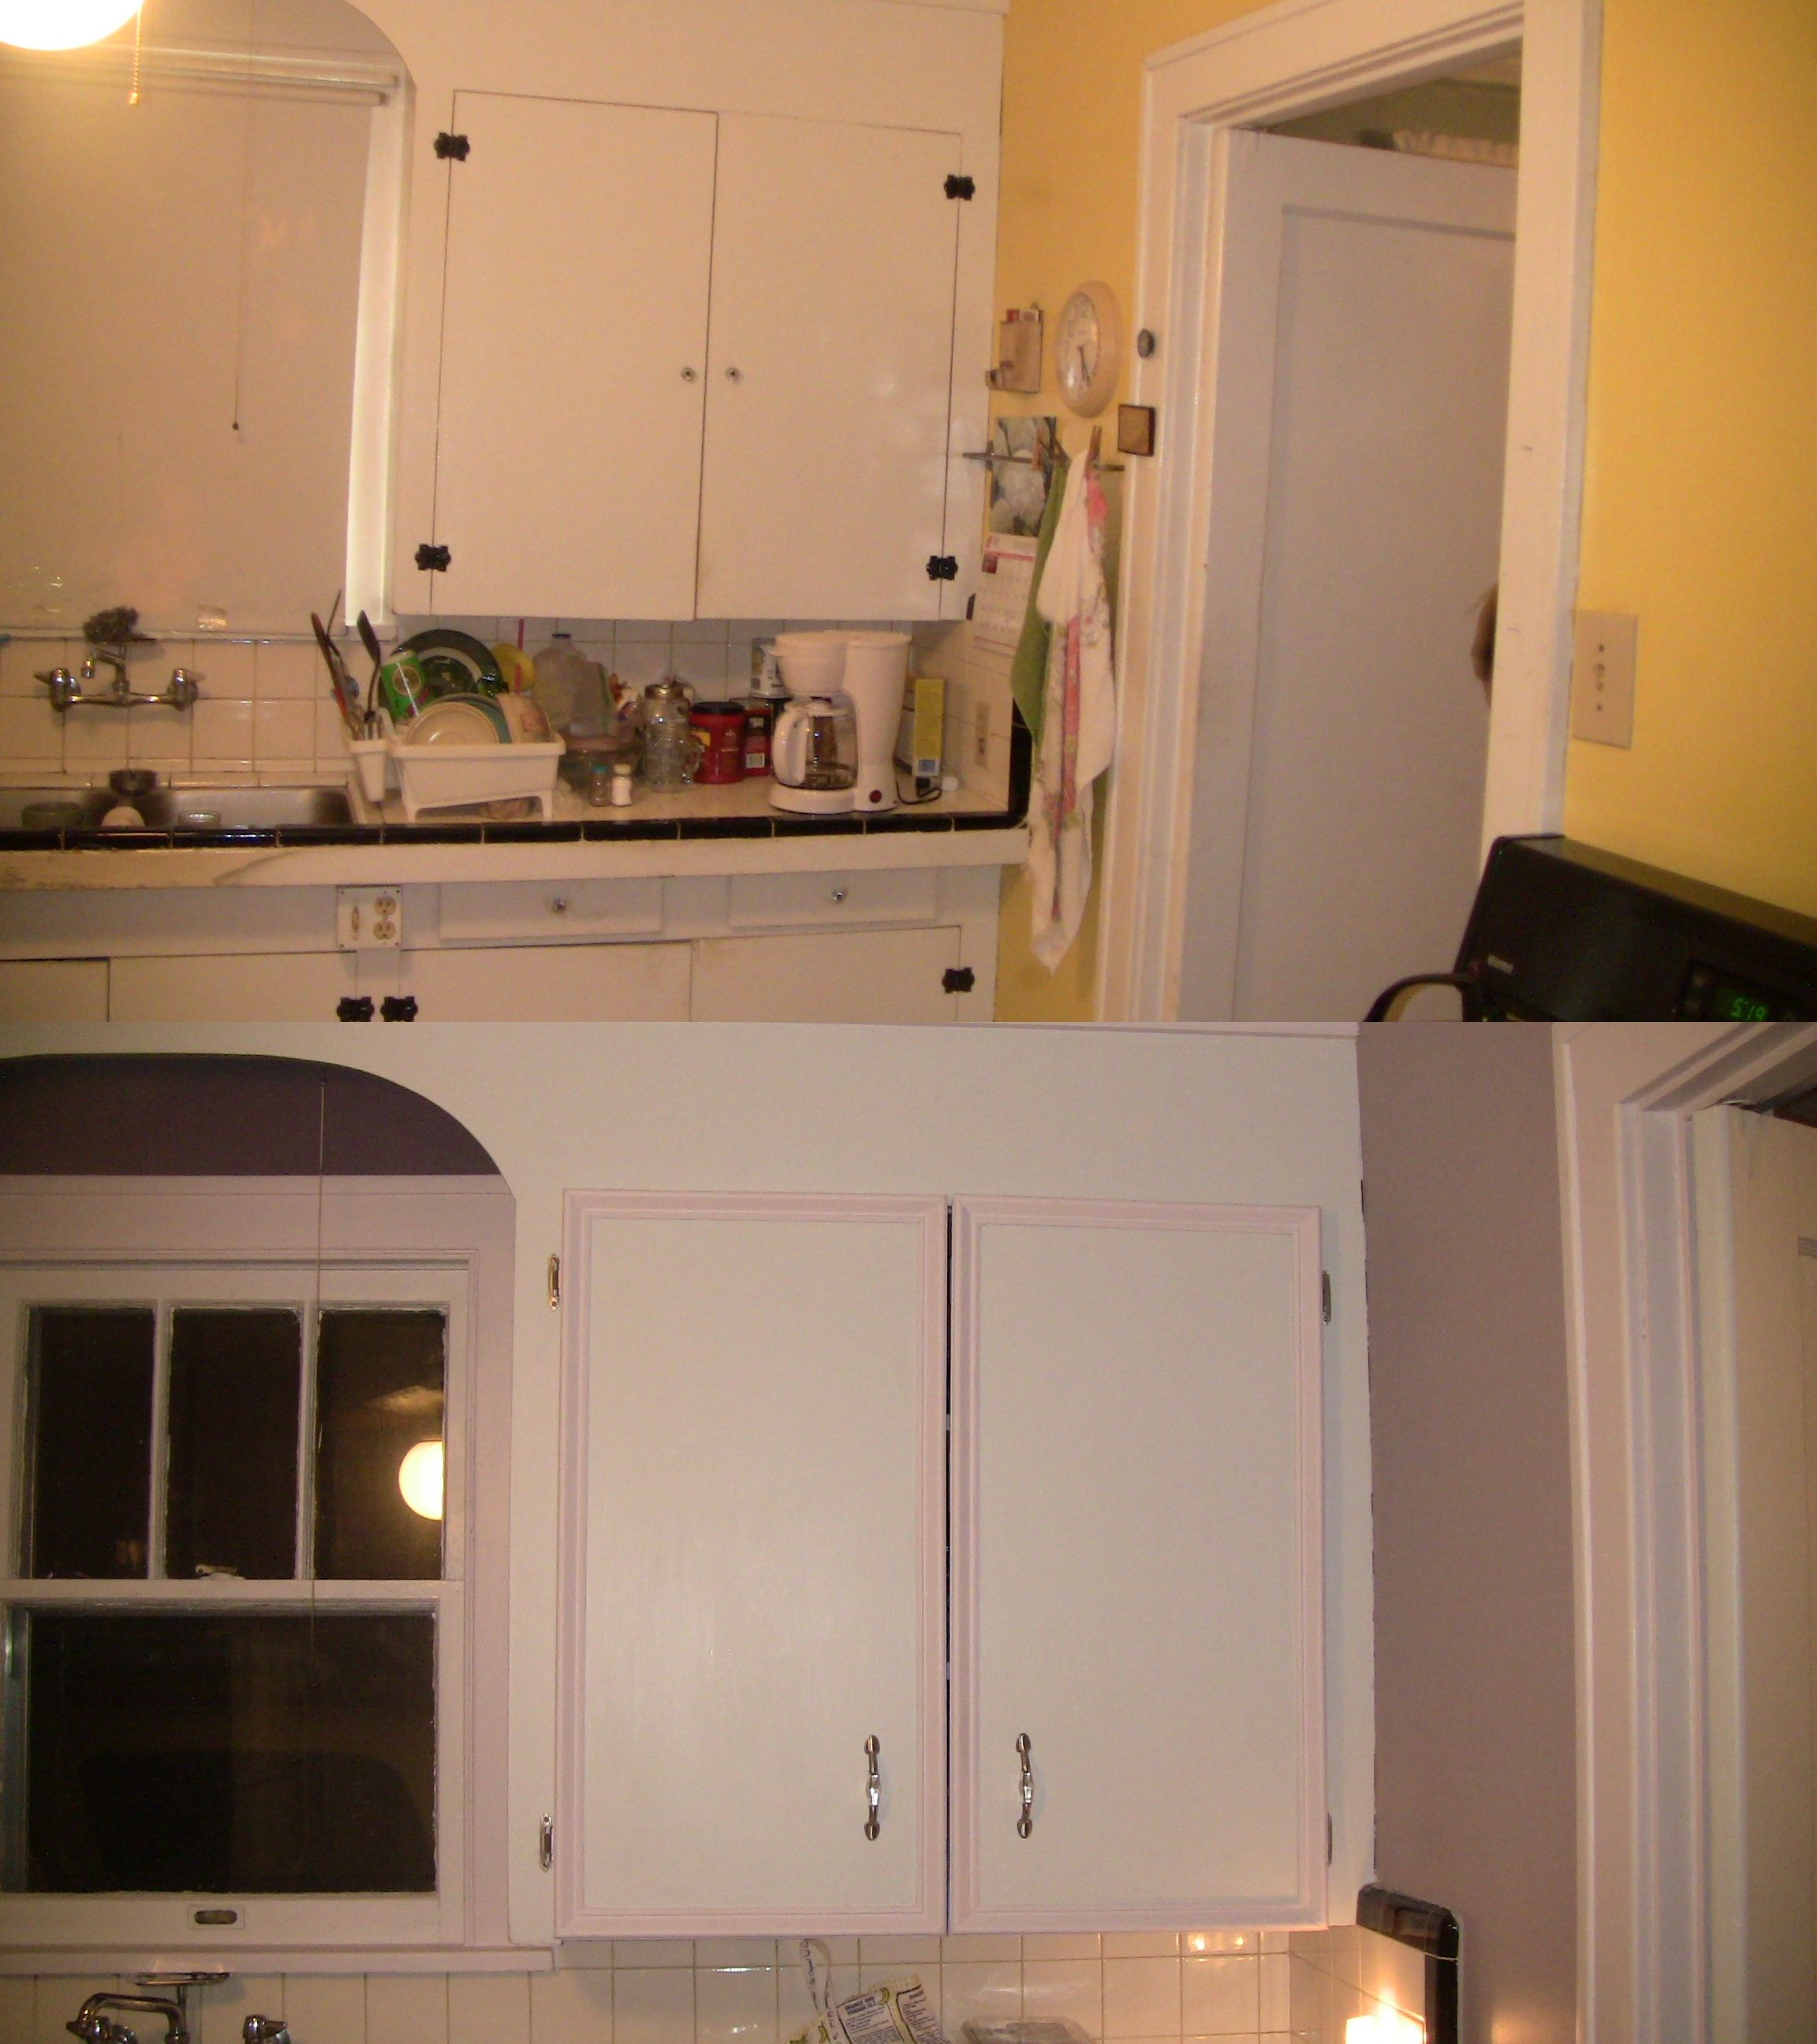 Kitchen Cabinet Alternatives: A Cheaper Alternative To Buying New Cabinet Doors ($300